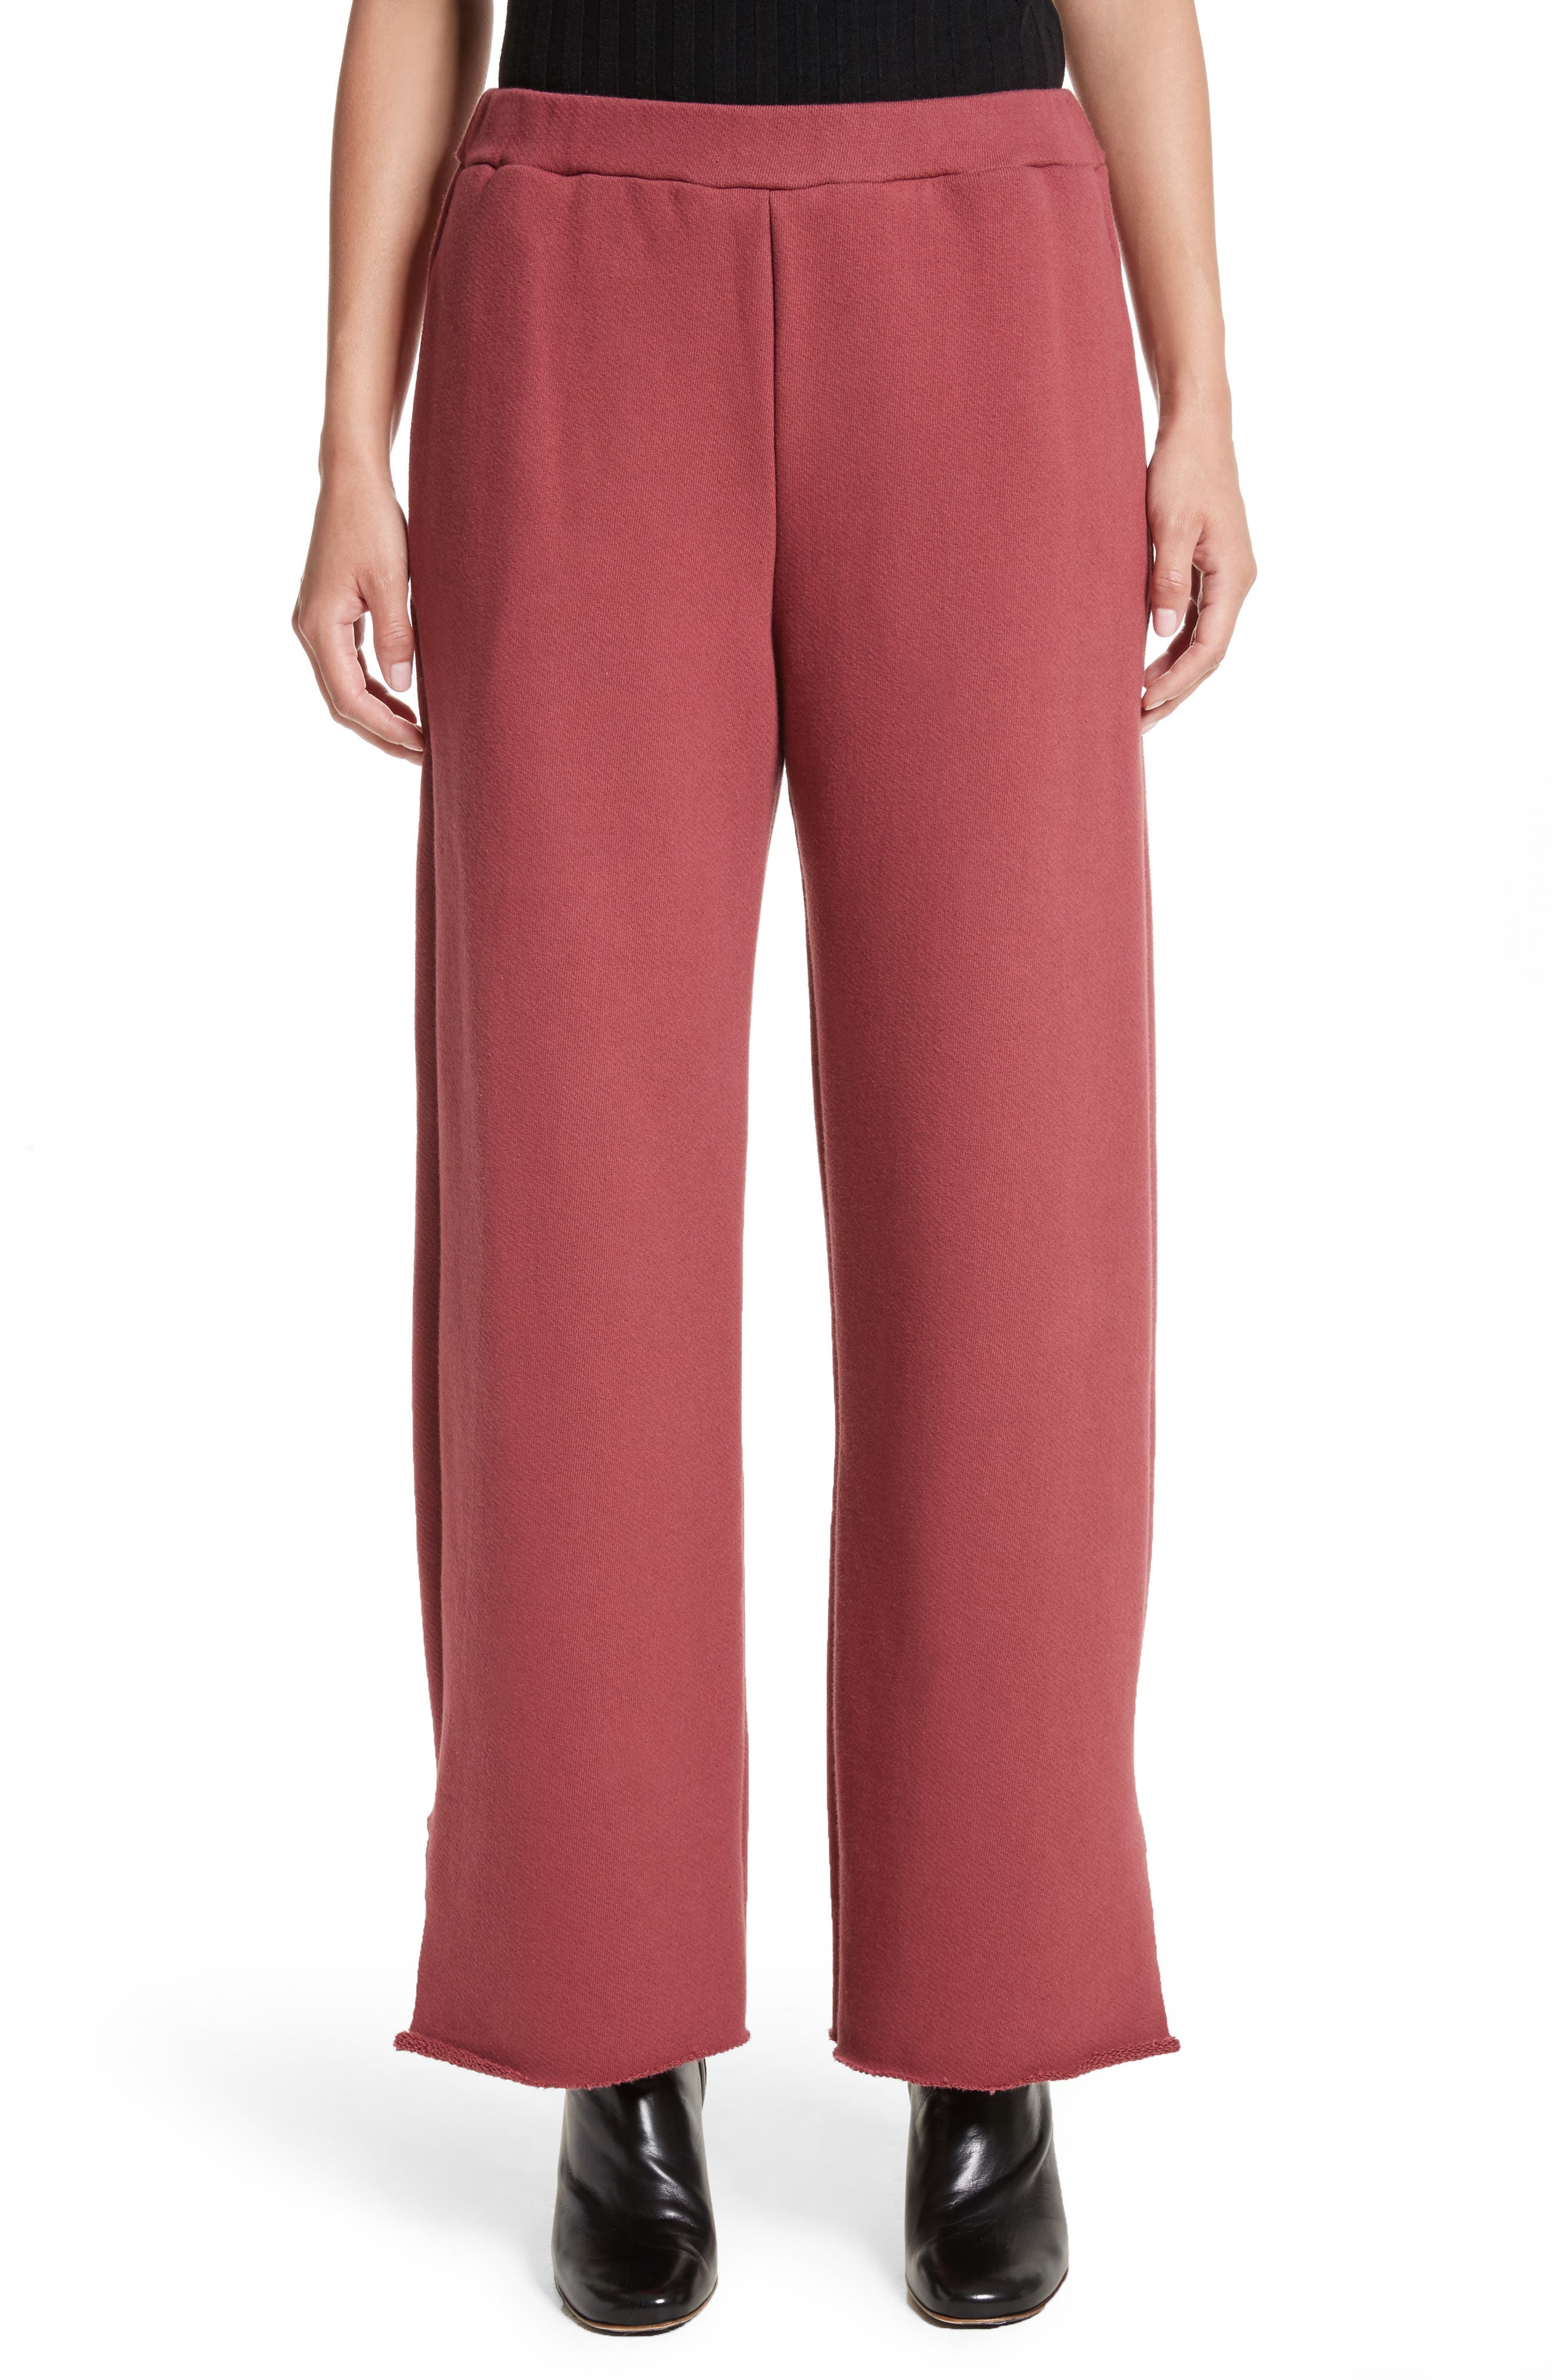 Canal French Terry Sweatpants,                         Main,                         color, 650